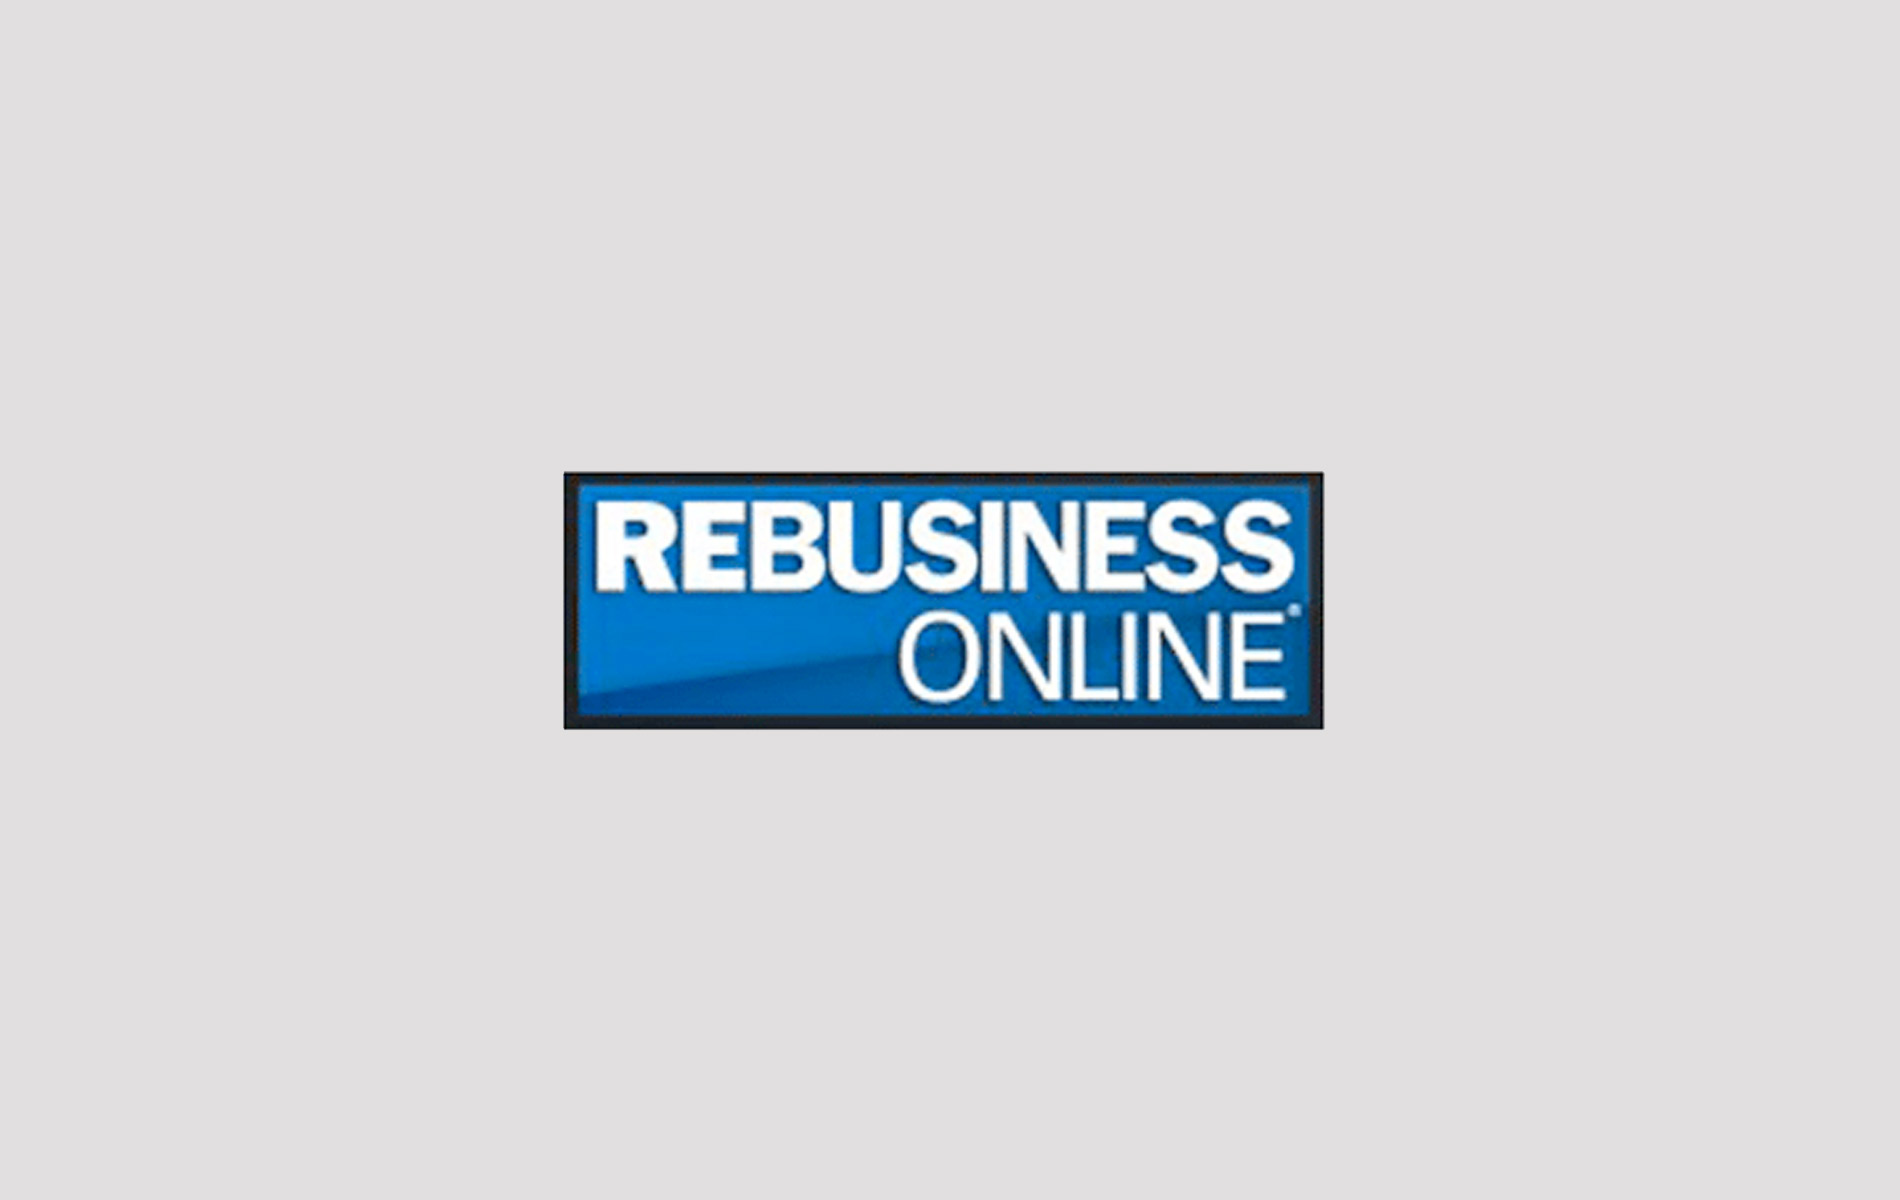 RE Business Online logo